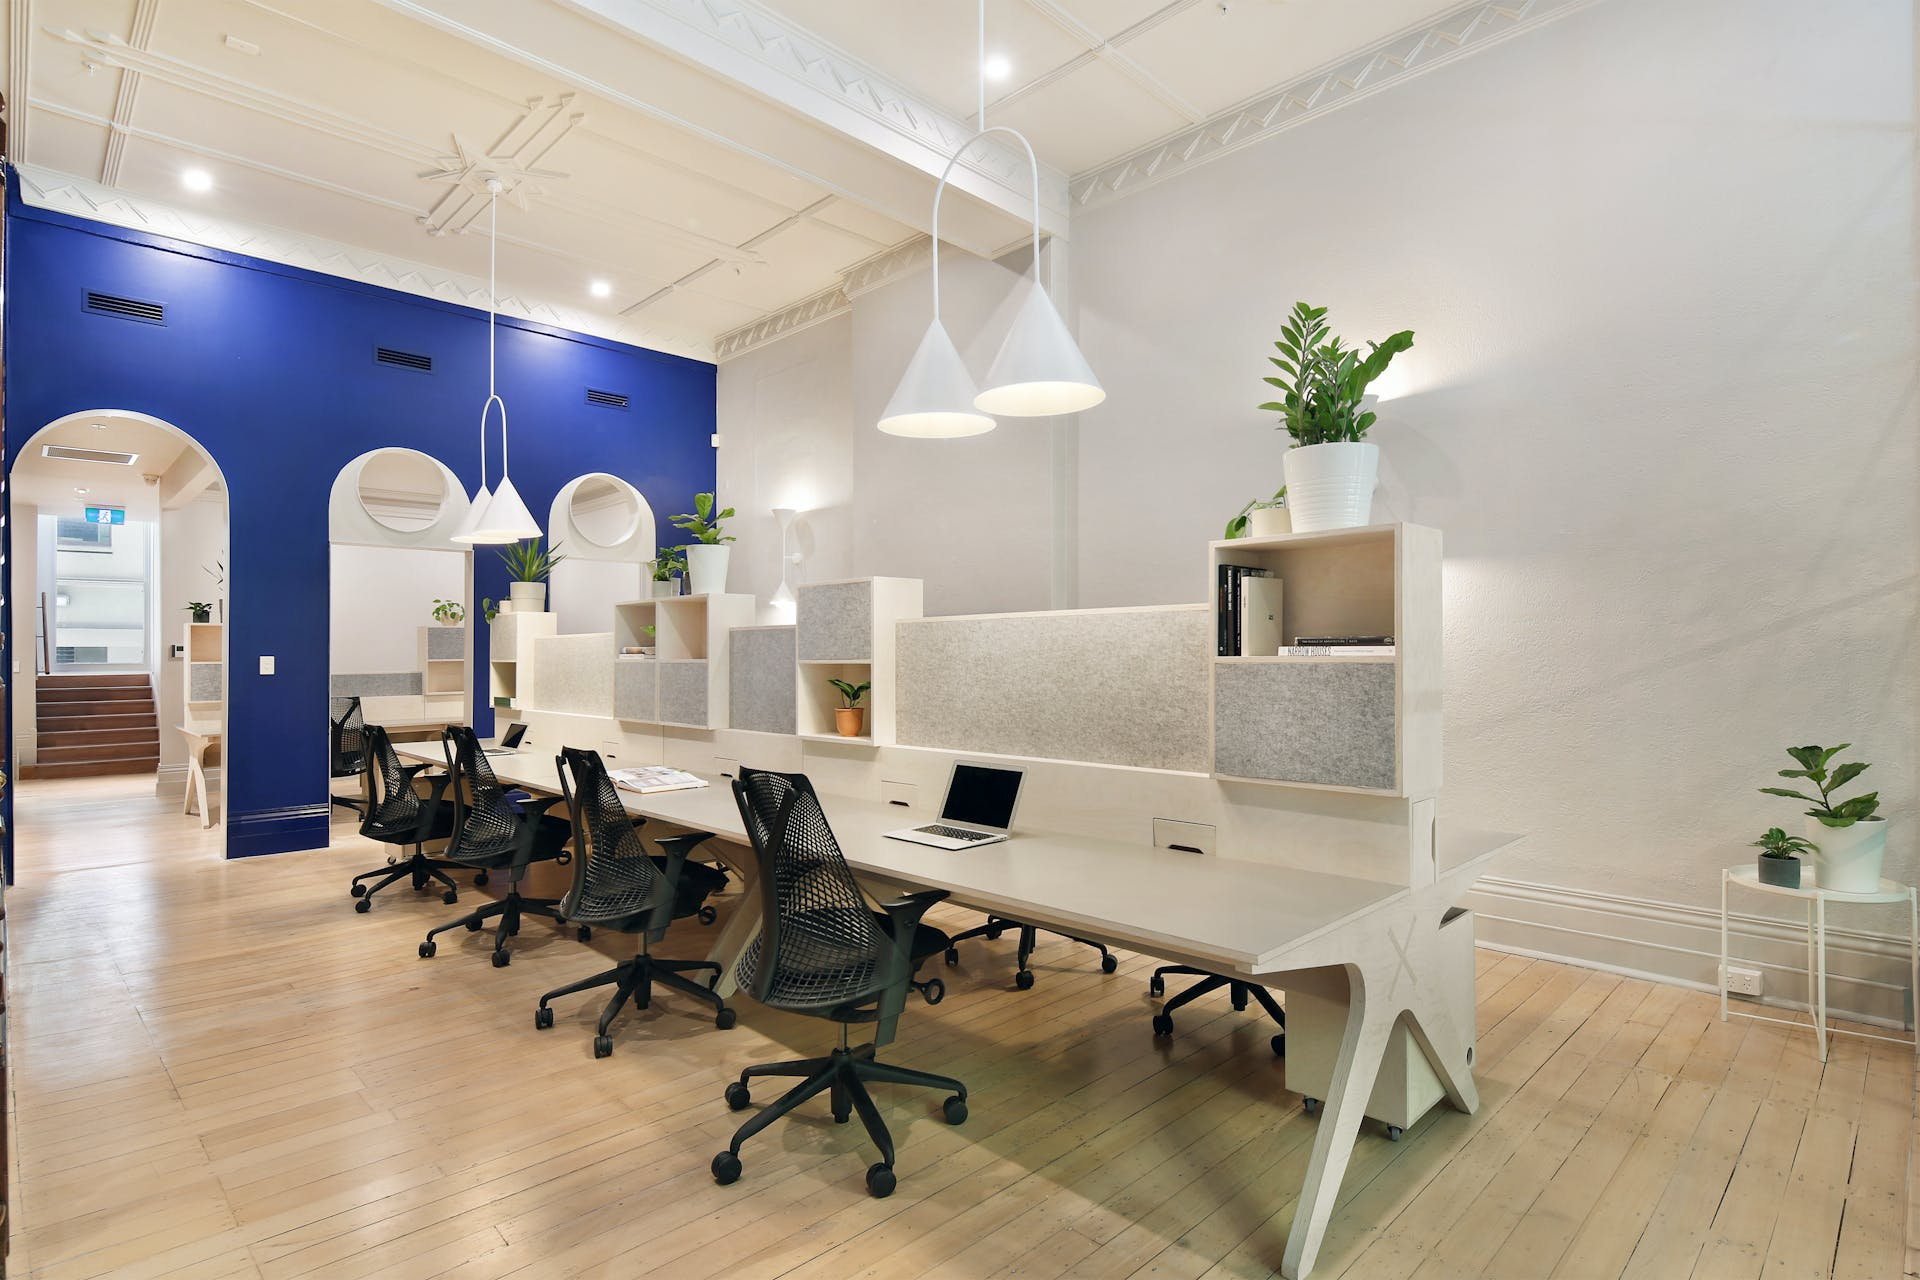 Ground floor, hot desk at 25 King Collective, image 13